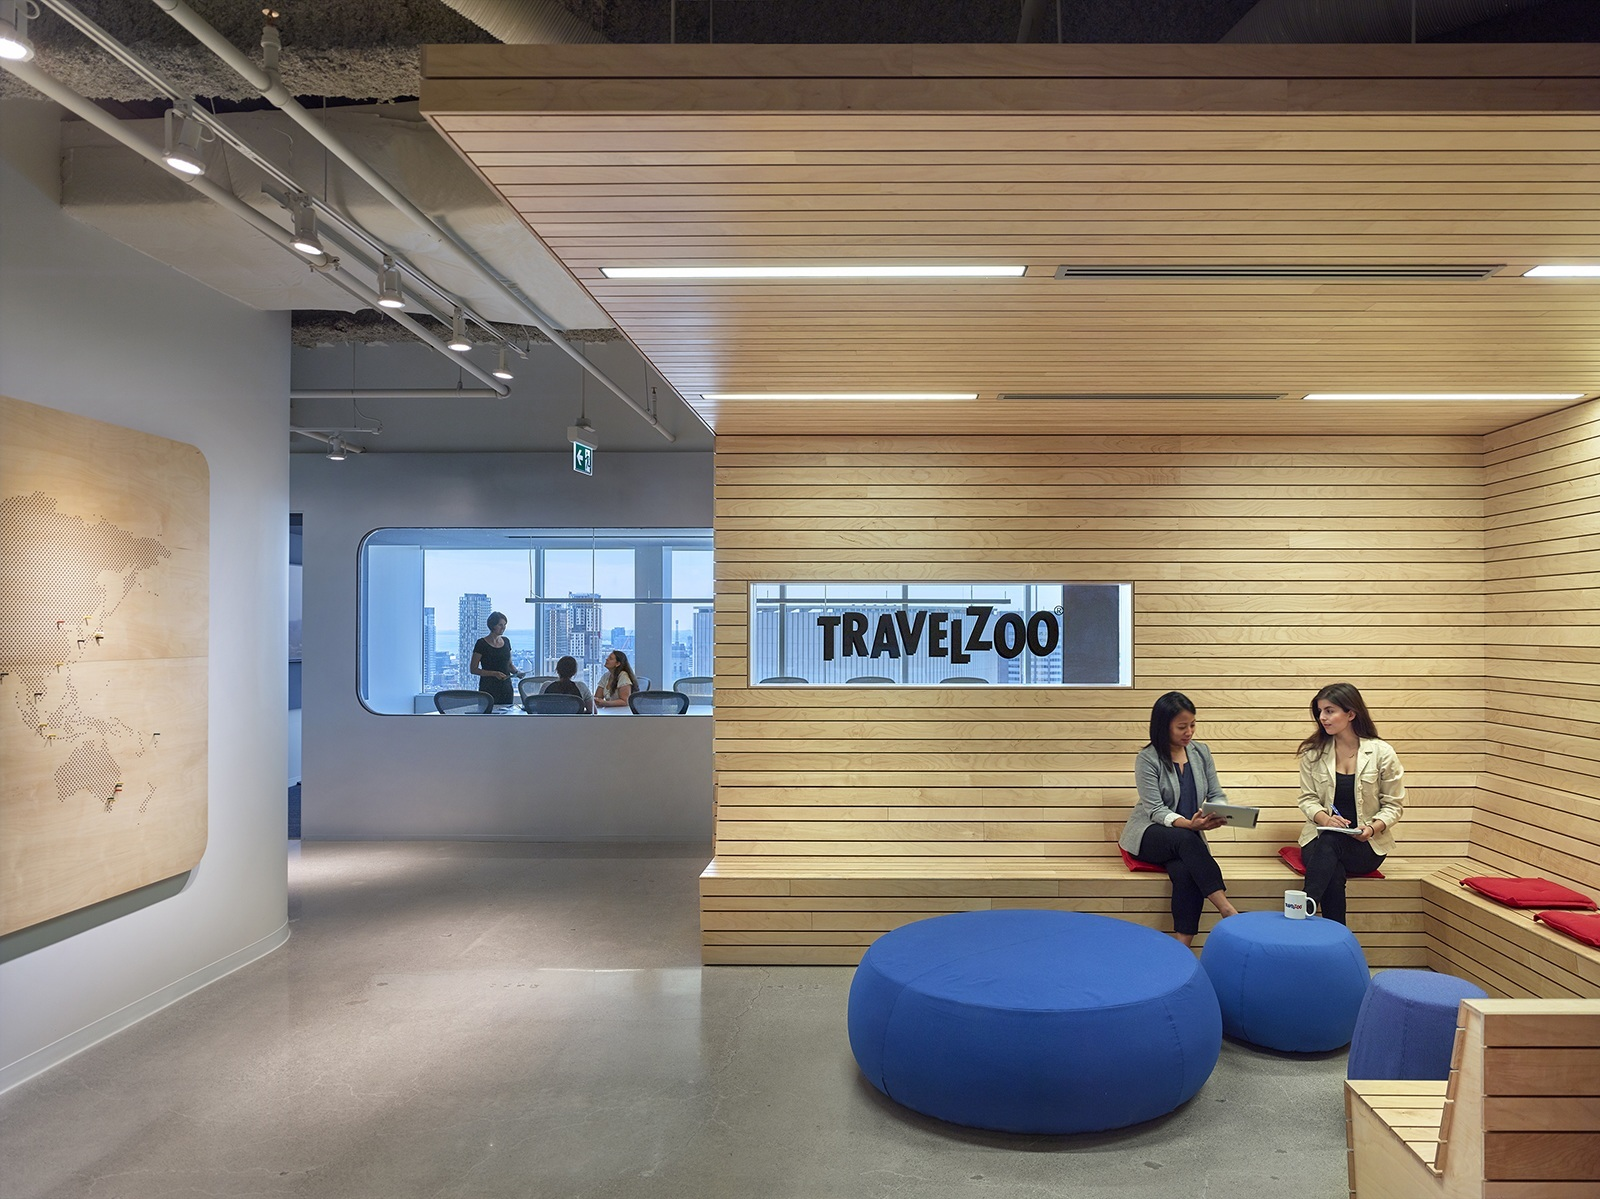 A Tour of Travelzoo's New Canadian Headquarters